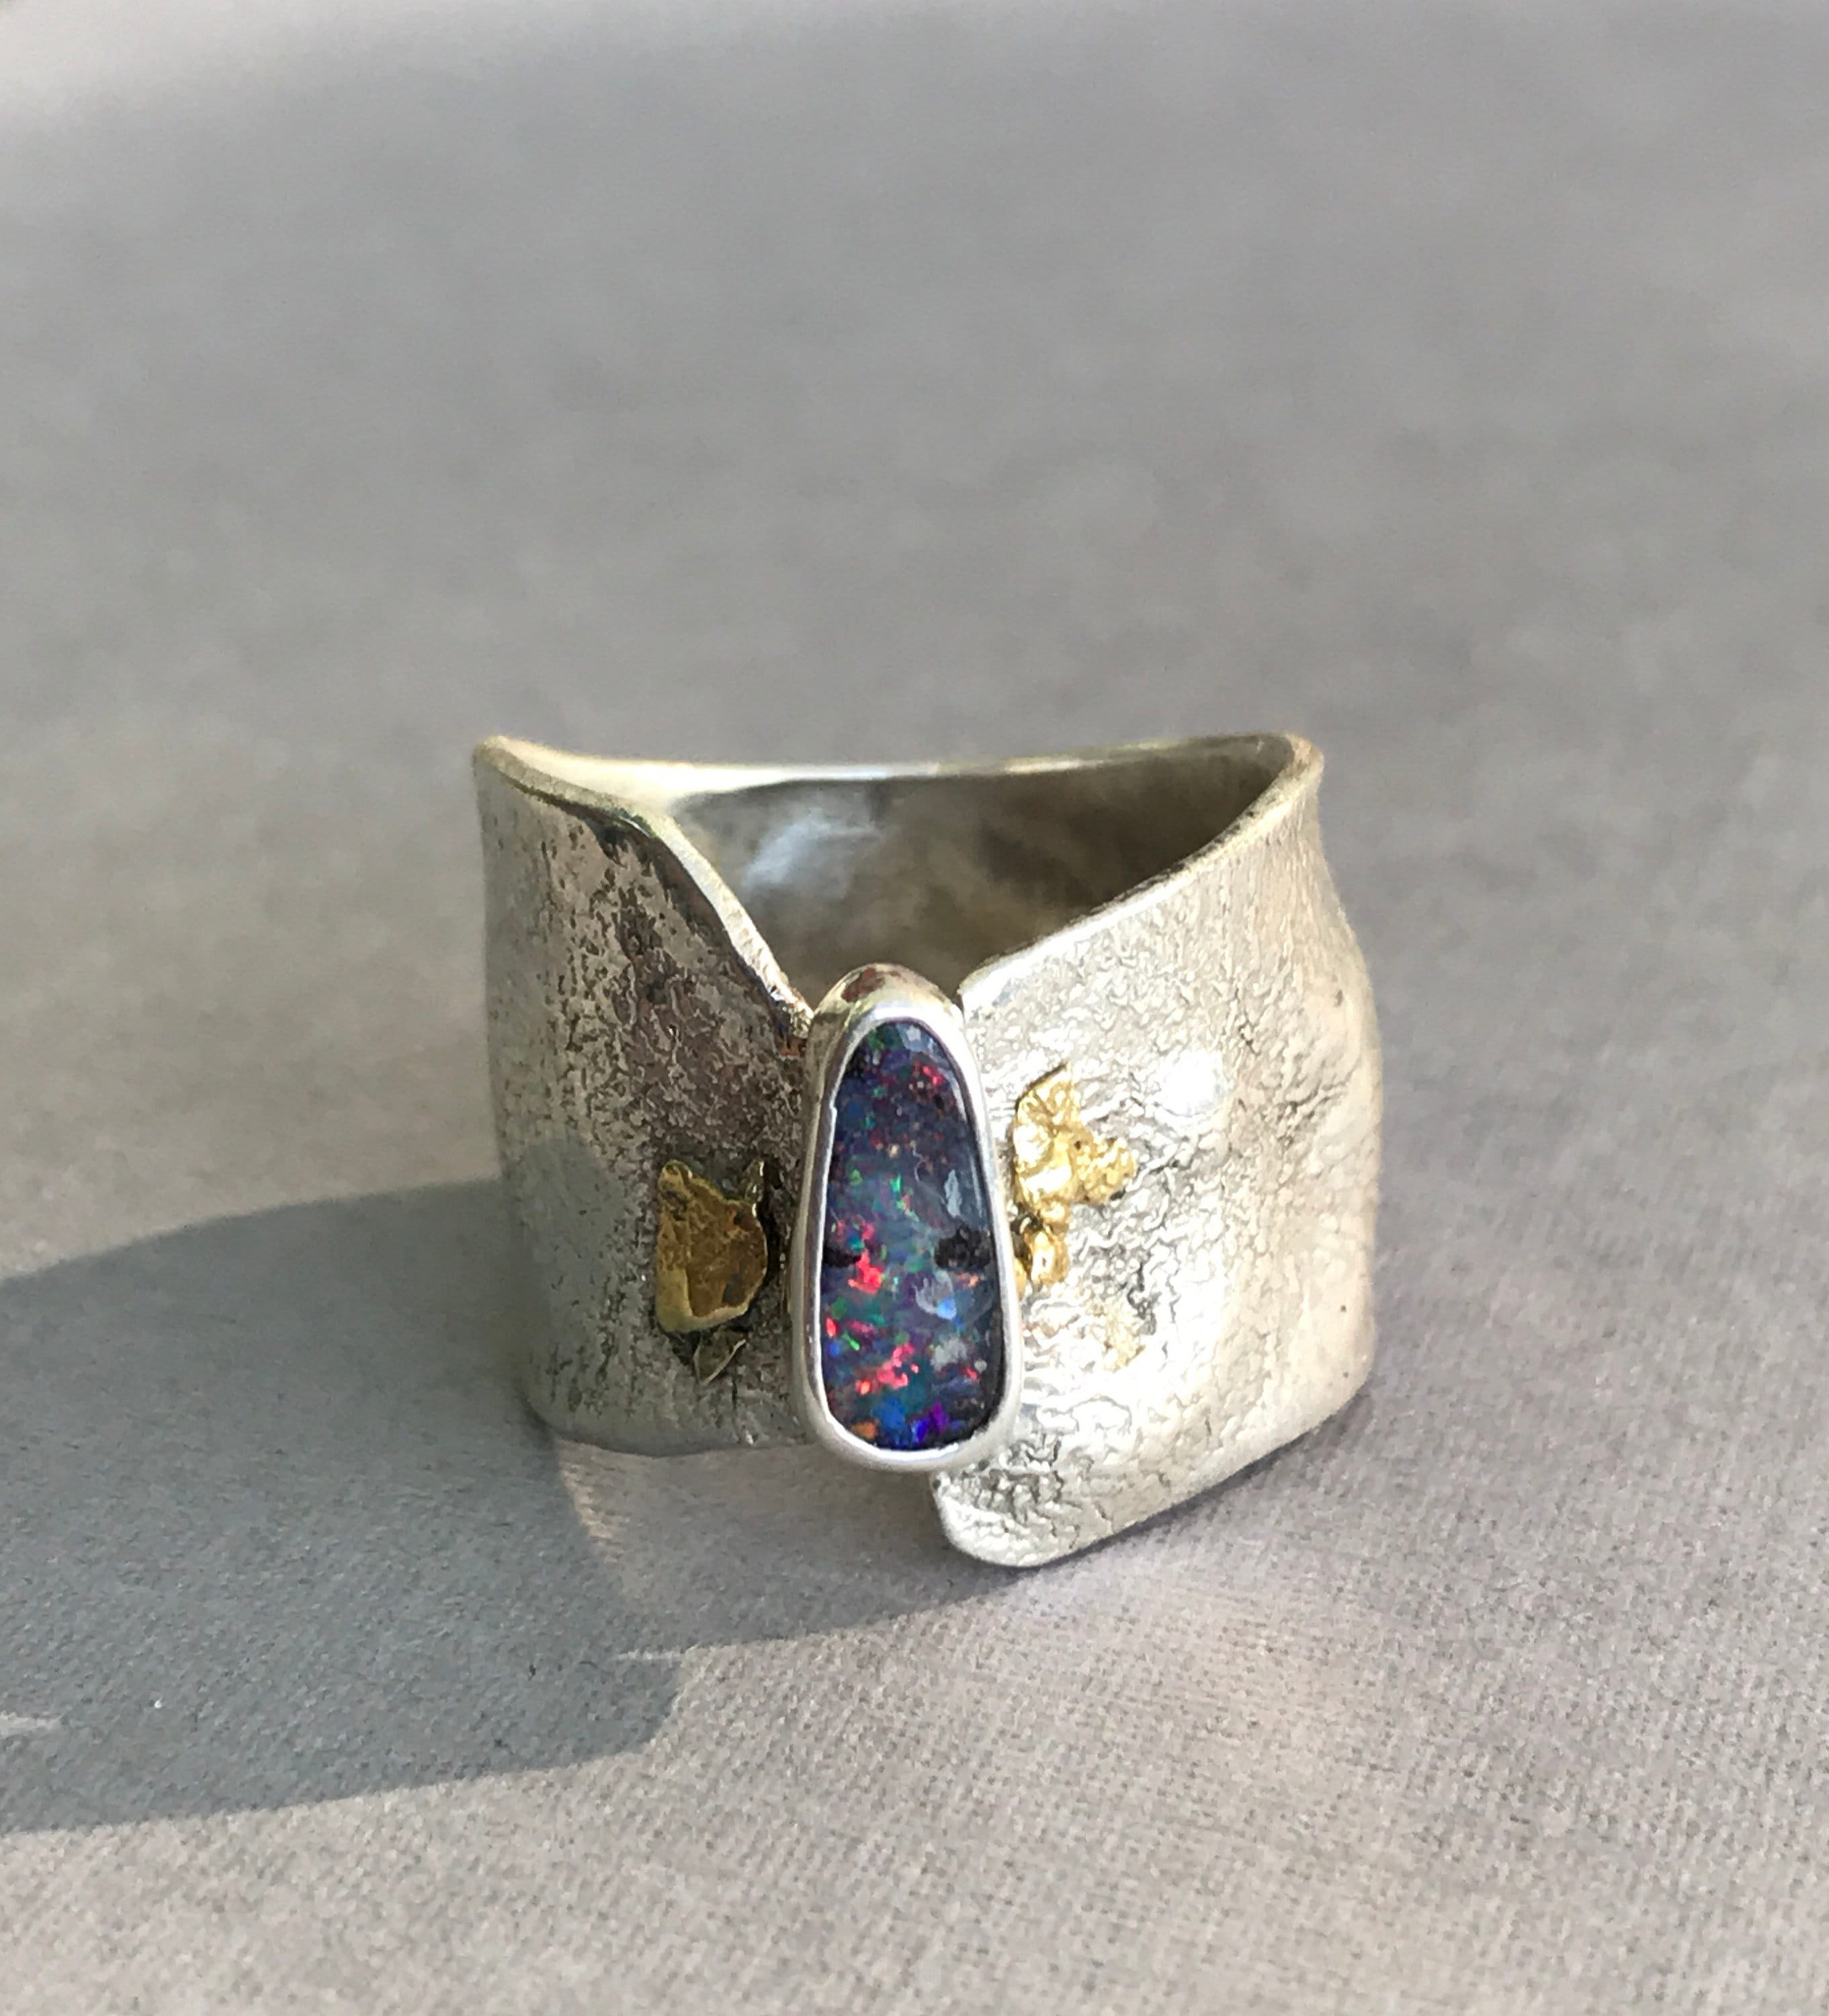 Opal ring reticulated silver 22k gold nuggets